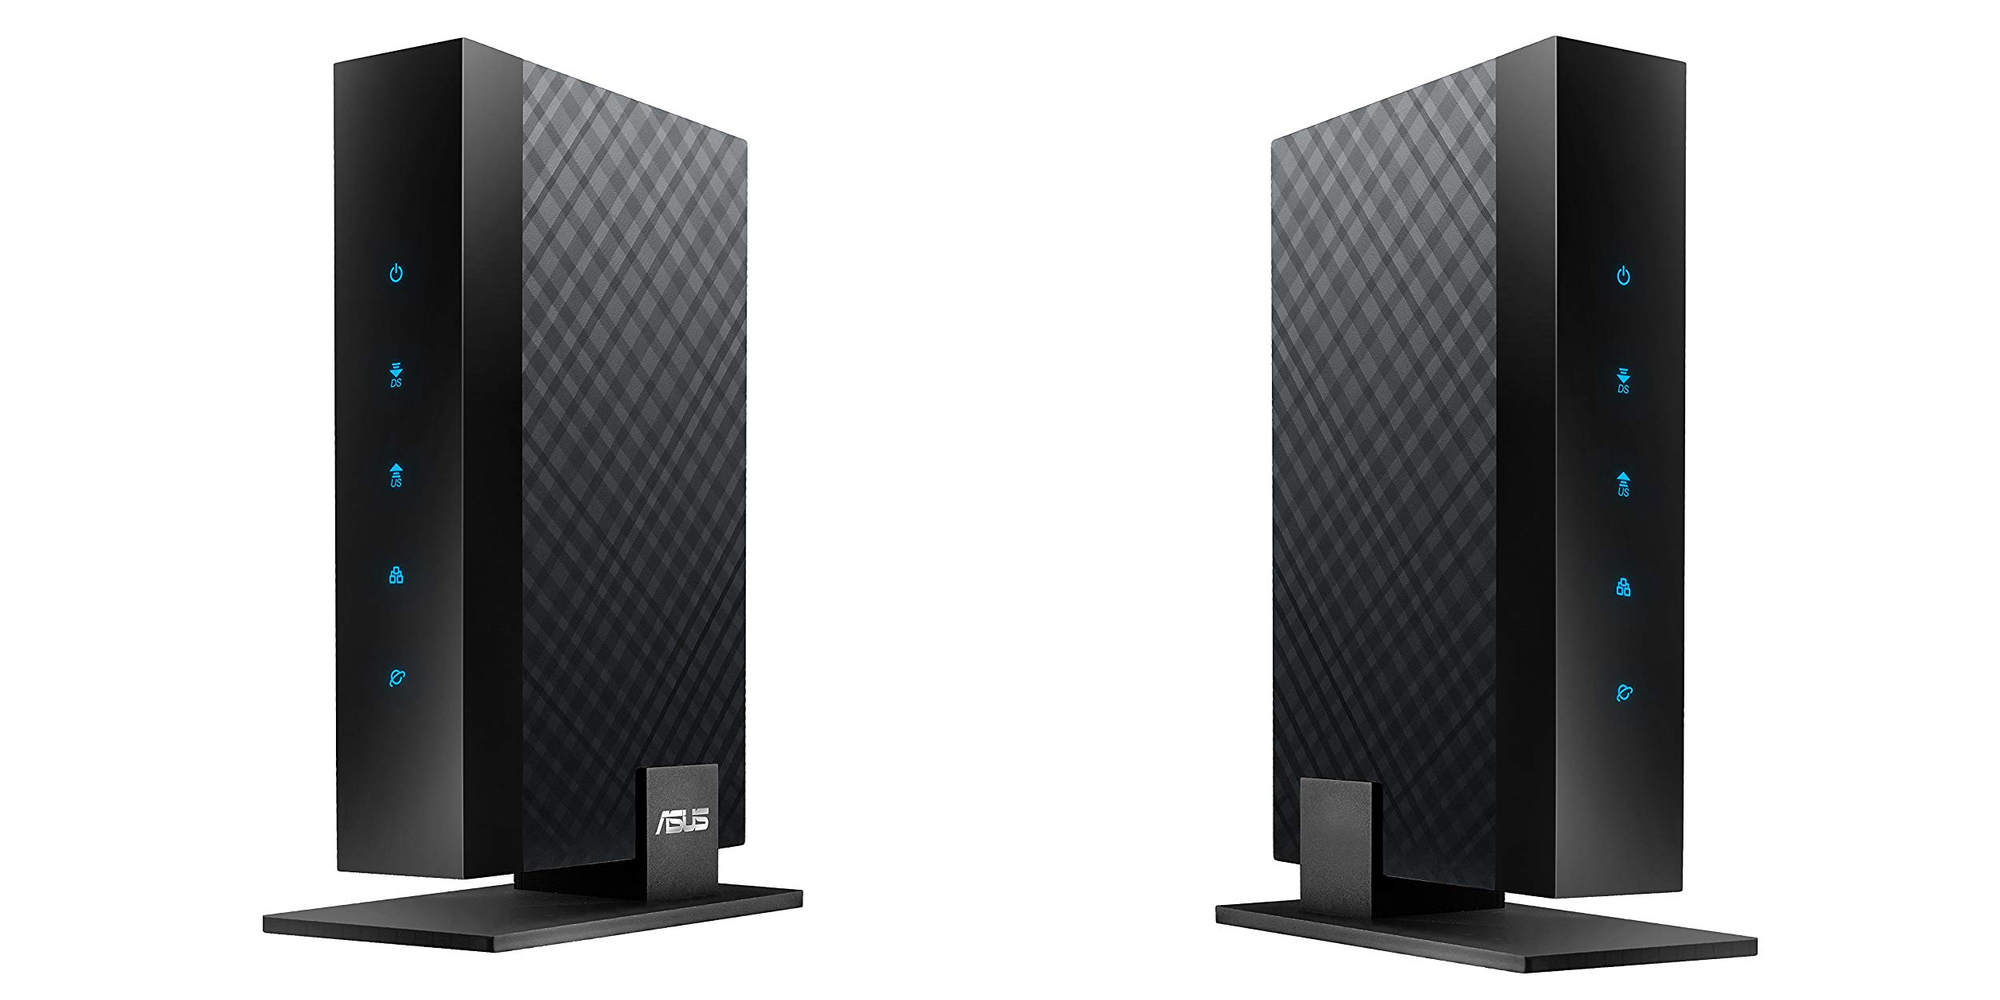 Asus Docsis 3 0 Cable Modem Returns To All Time Low At 50